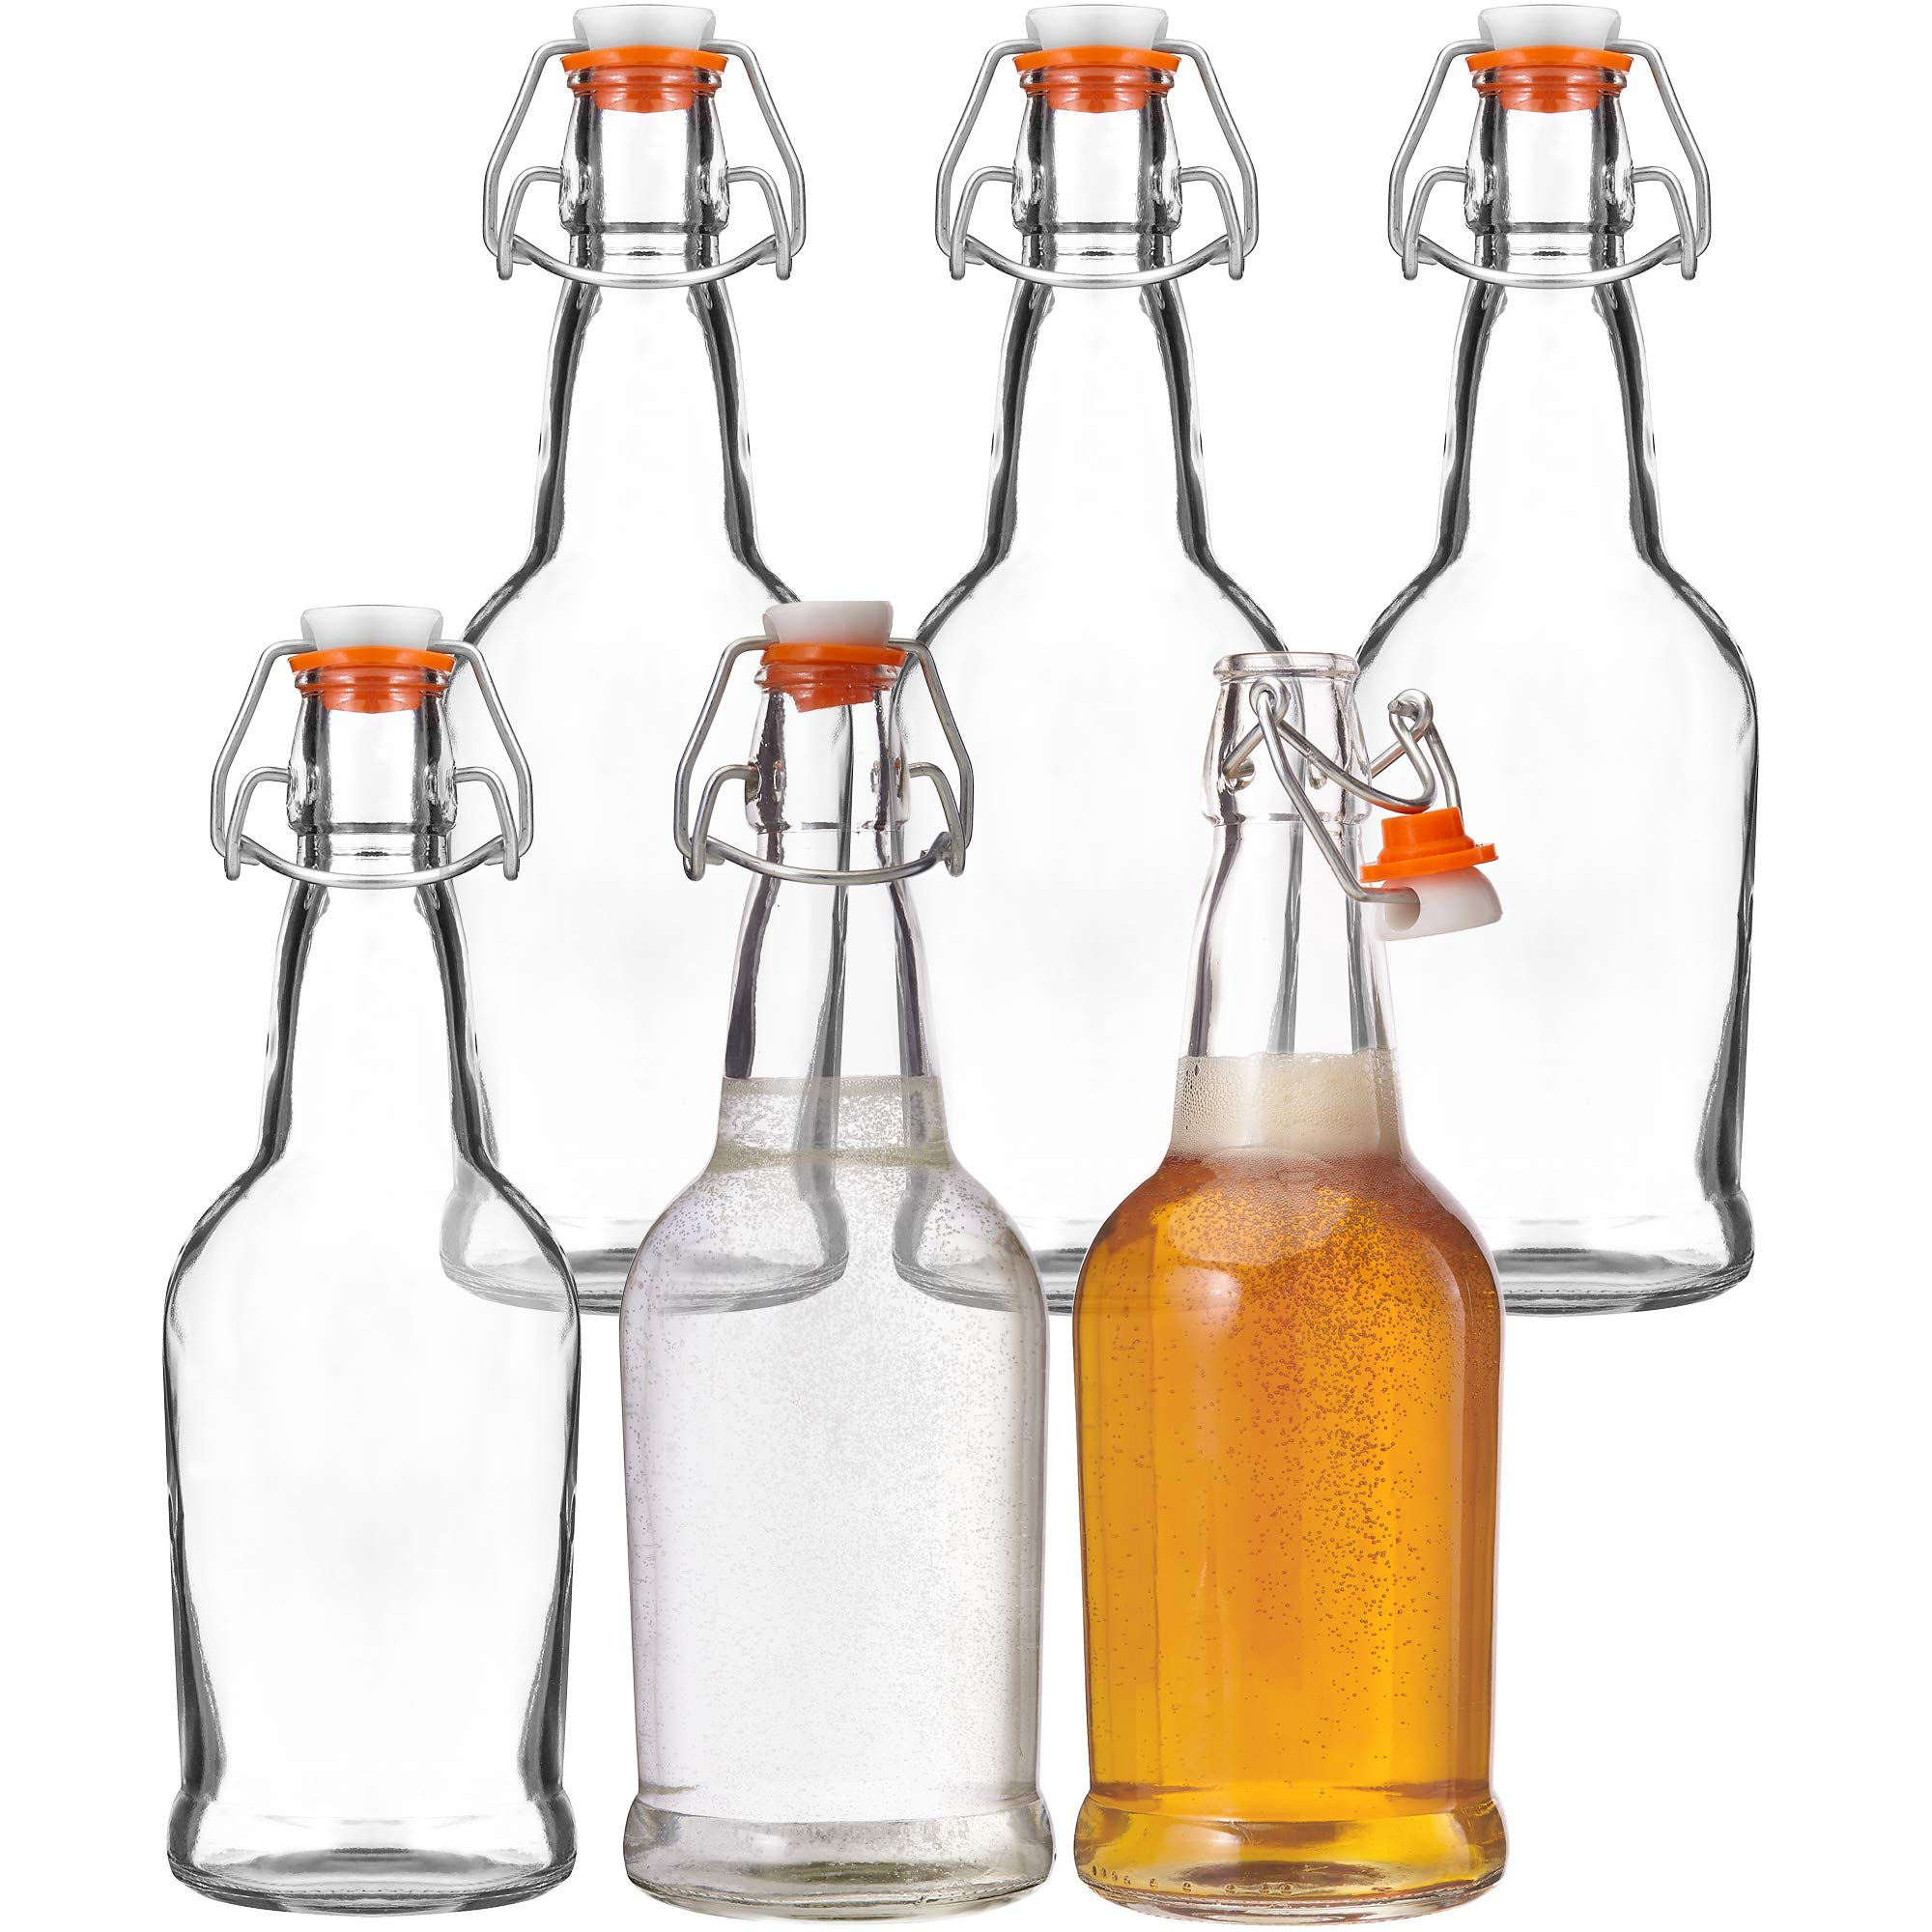 Kitchen Lux Glass Beer Bottles with Swing Top Cap, 6 Pack – Home Brewing Grolsch Bottle Set – Airtight Rubber Silicone Lid for Kombucha, Dressings and More